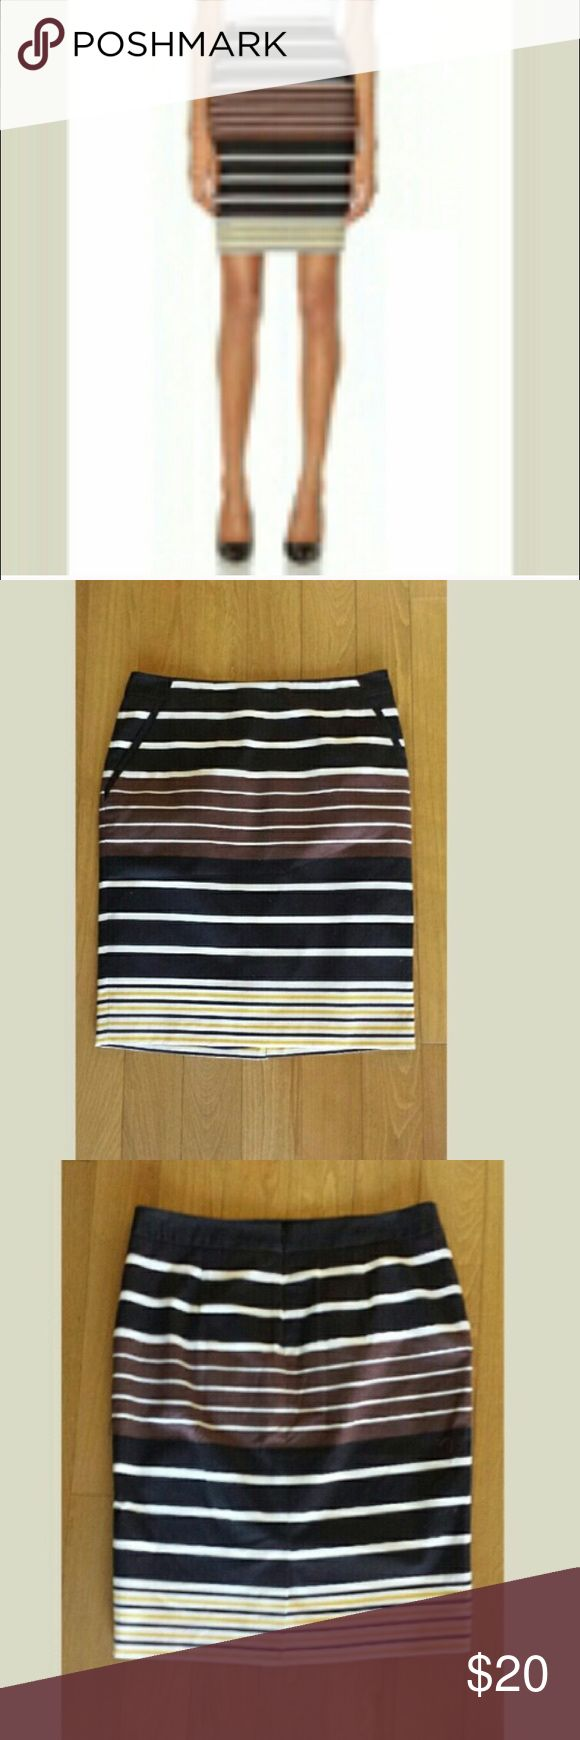 "Striped pencil skirt The Limited stripe pencil skirt. Fully lined. Waist measures 15.5"", 21"" long Skirts Pencil"